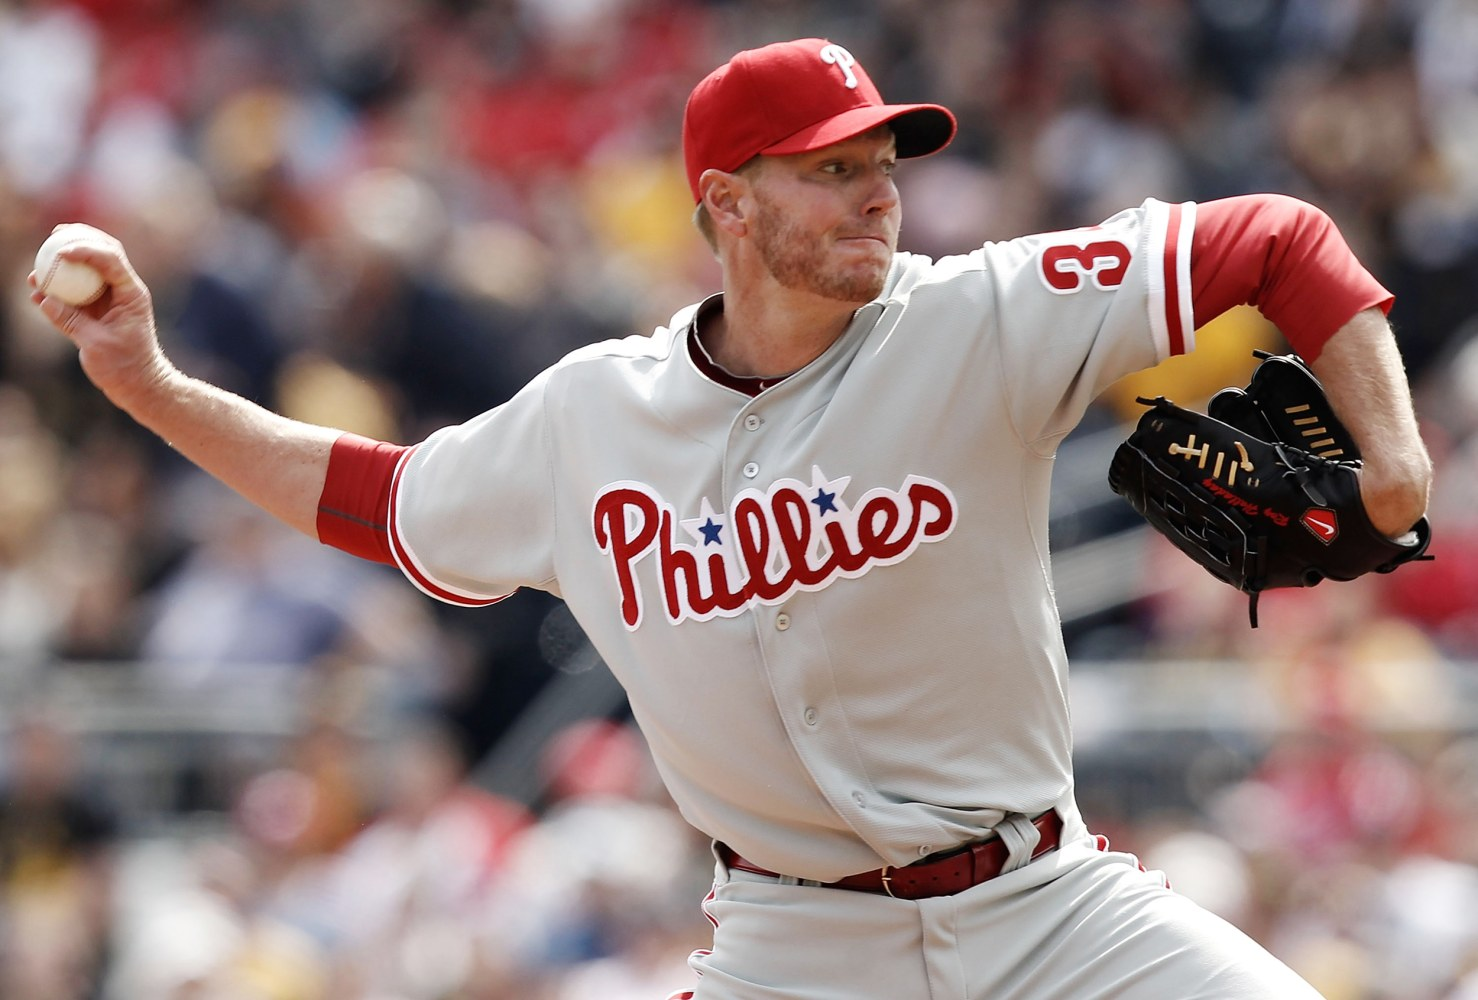 Former Philadelphia Phillies pitcher Roy Halladay dead in plane crash